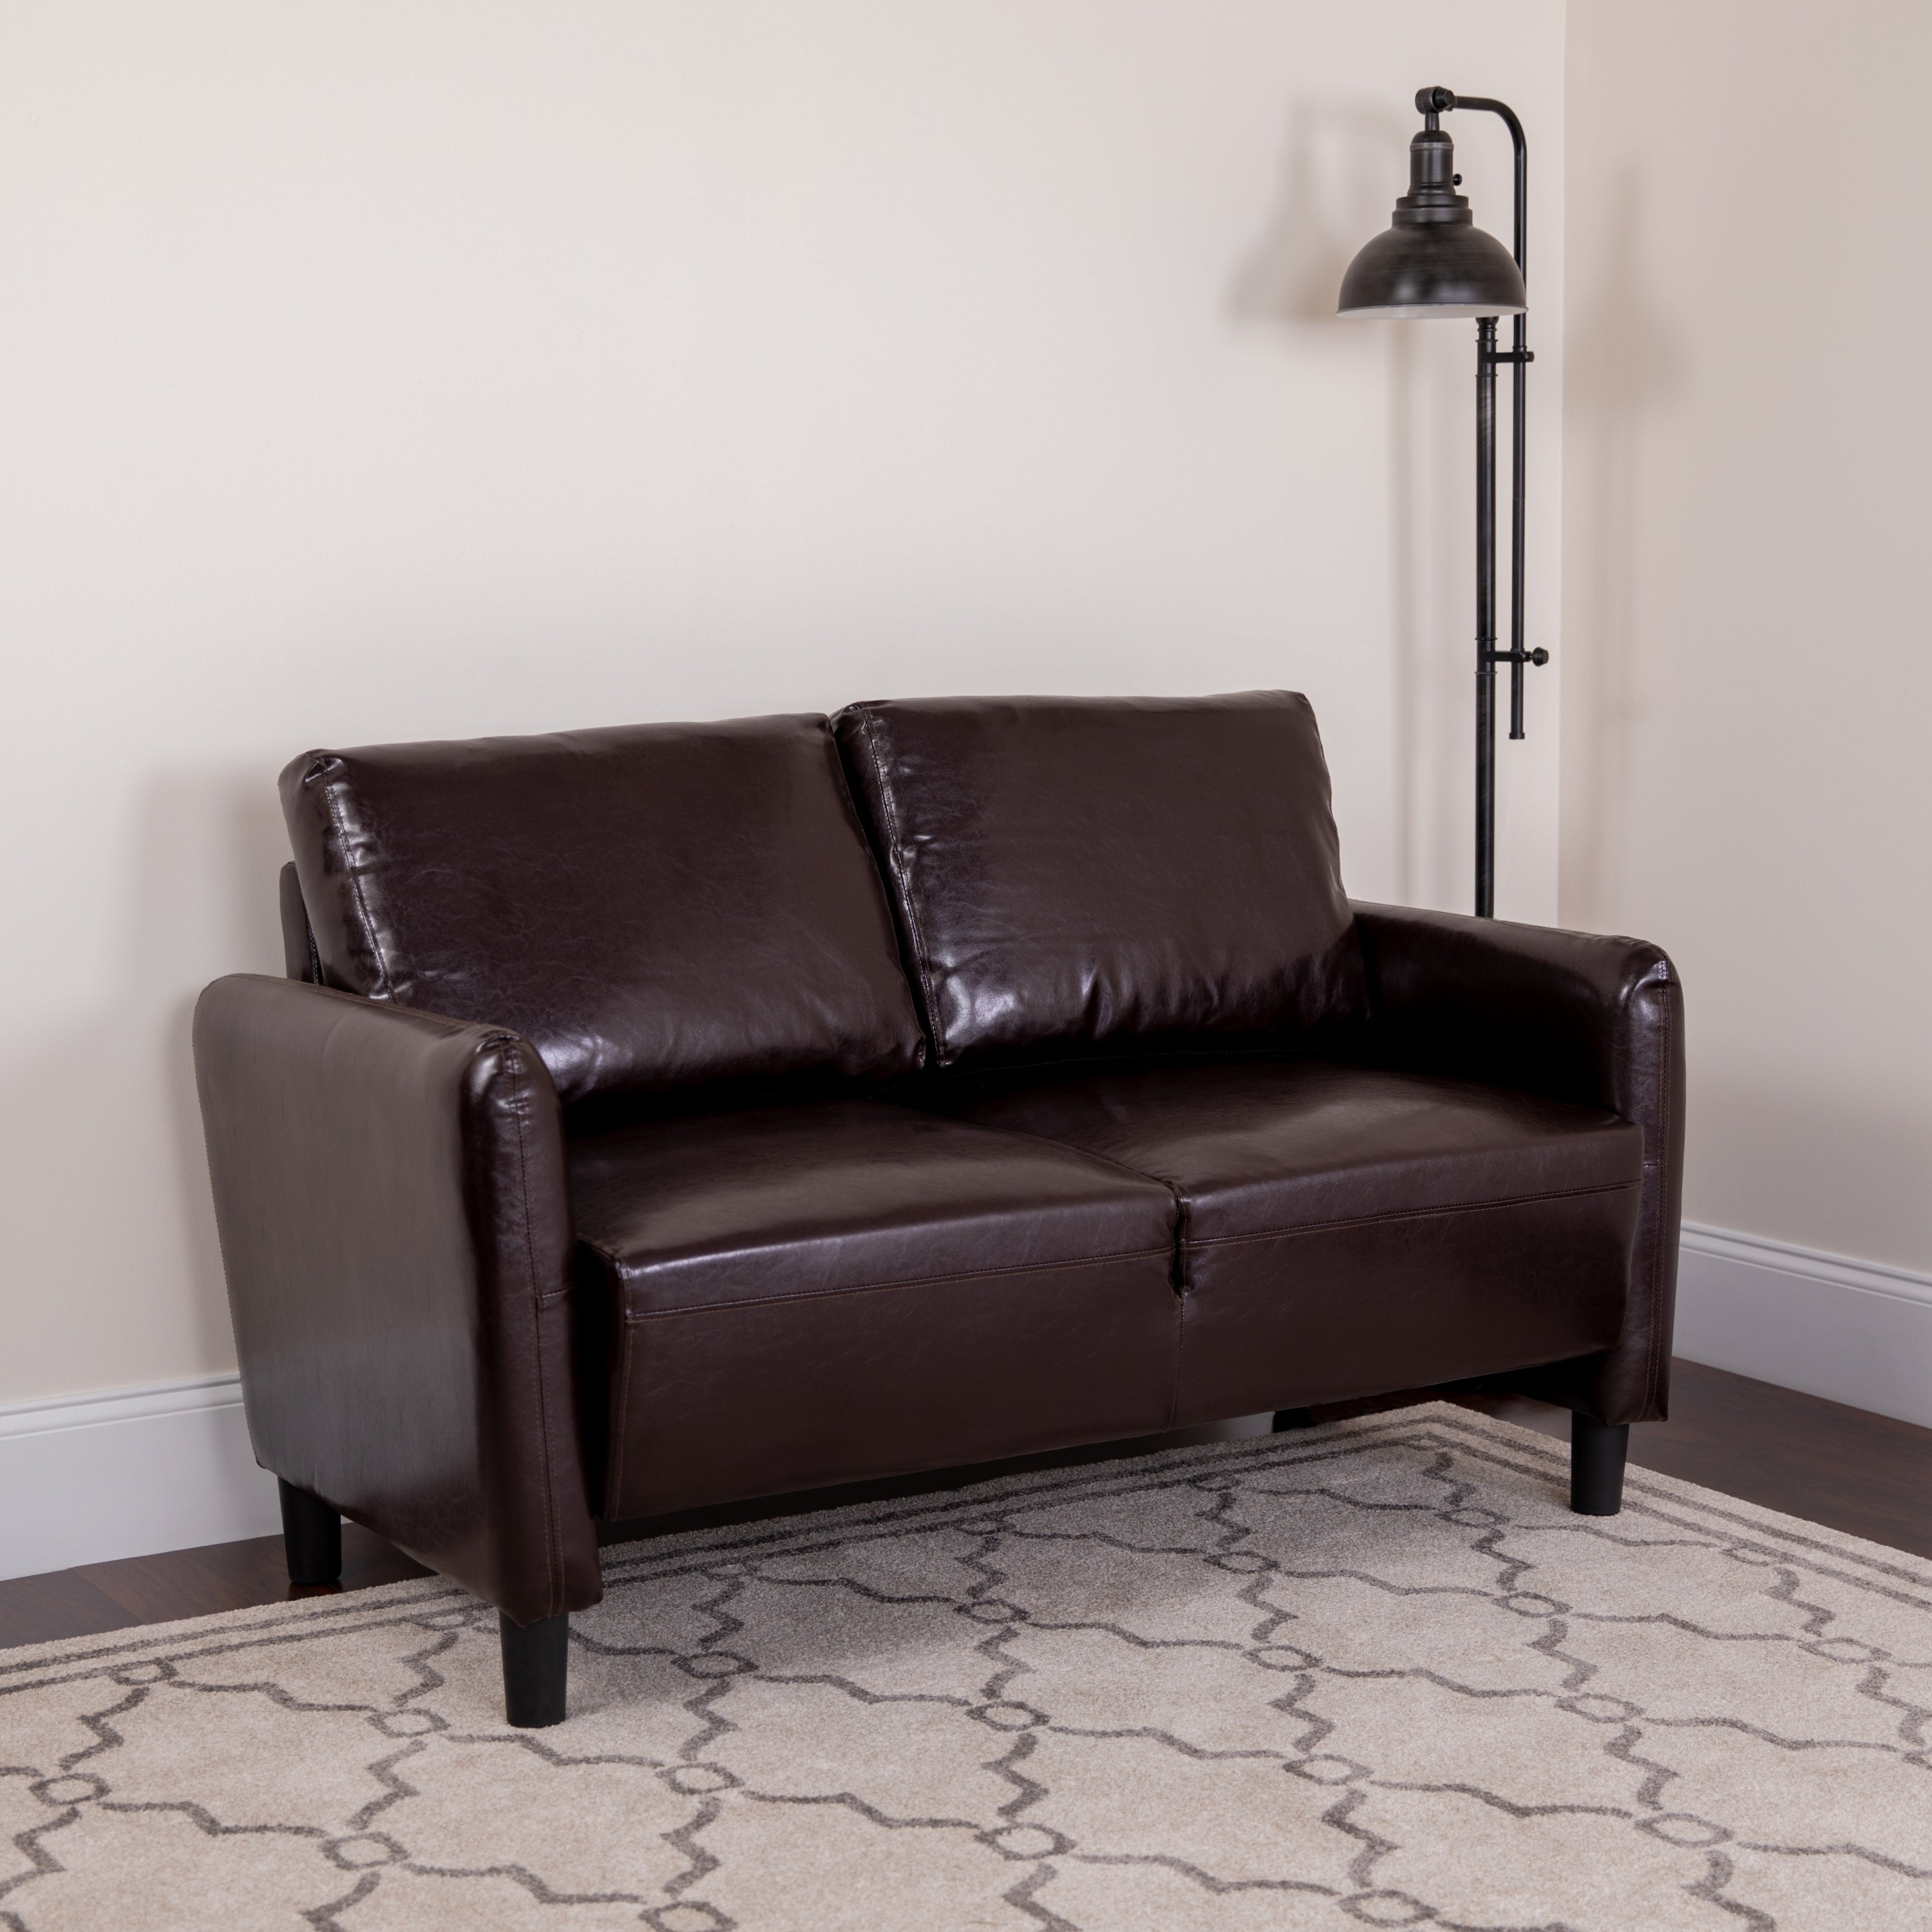 Outstanding Buy Faux Leather Loveseats Online At Overstock Our Best Squirreltailoven Fun Painted Chair Ideas Images Squirreltailovenorg